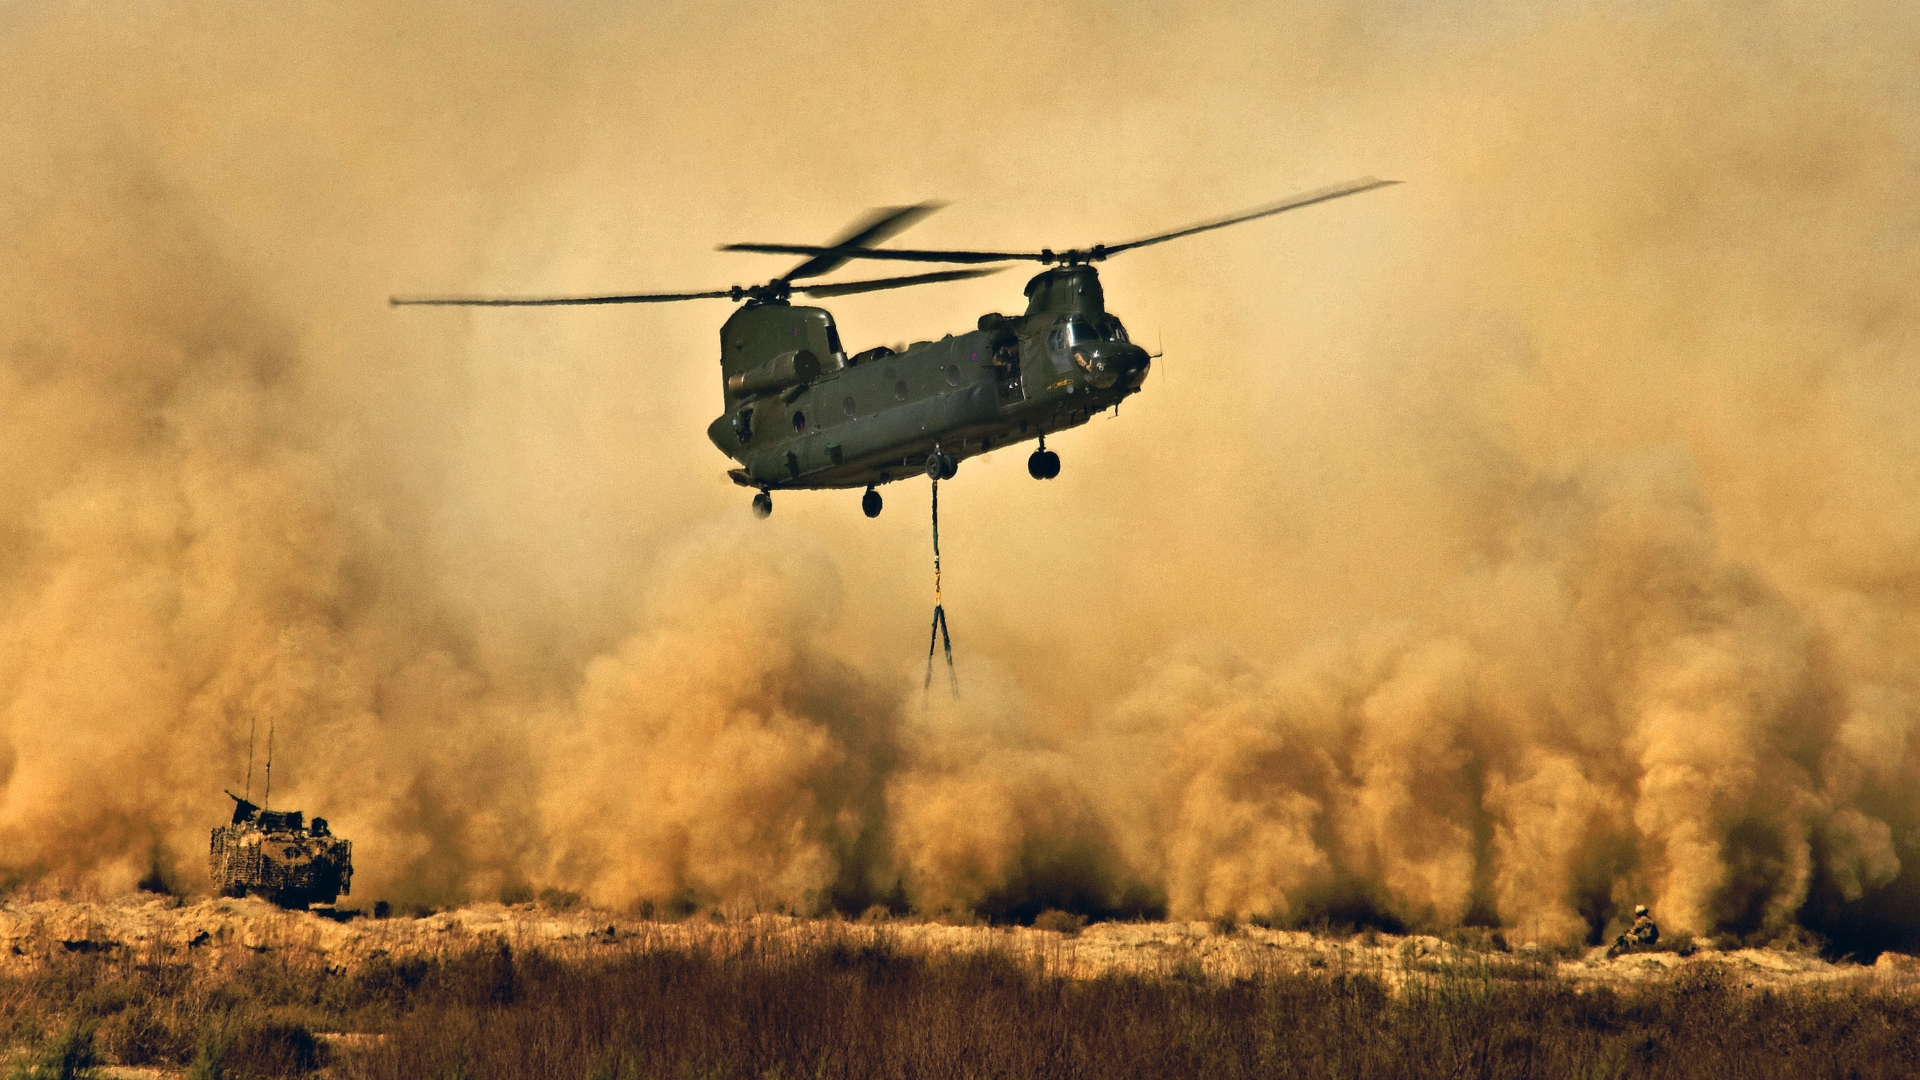 boeing ch 47 chinook helicopter with Big on File Boeing Vertol BV 347 Chinook  65 7992   10509105573 further Top 10 Fastest Helicopters World together with Big also Chinook Boeing Ch 47 Chinook Ch 47 32761 besides File CH 47 lifting F 86L at Wendover Utah 2008.